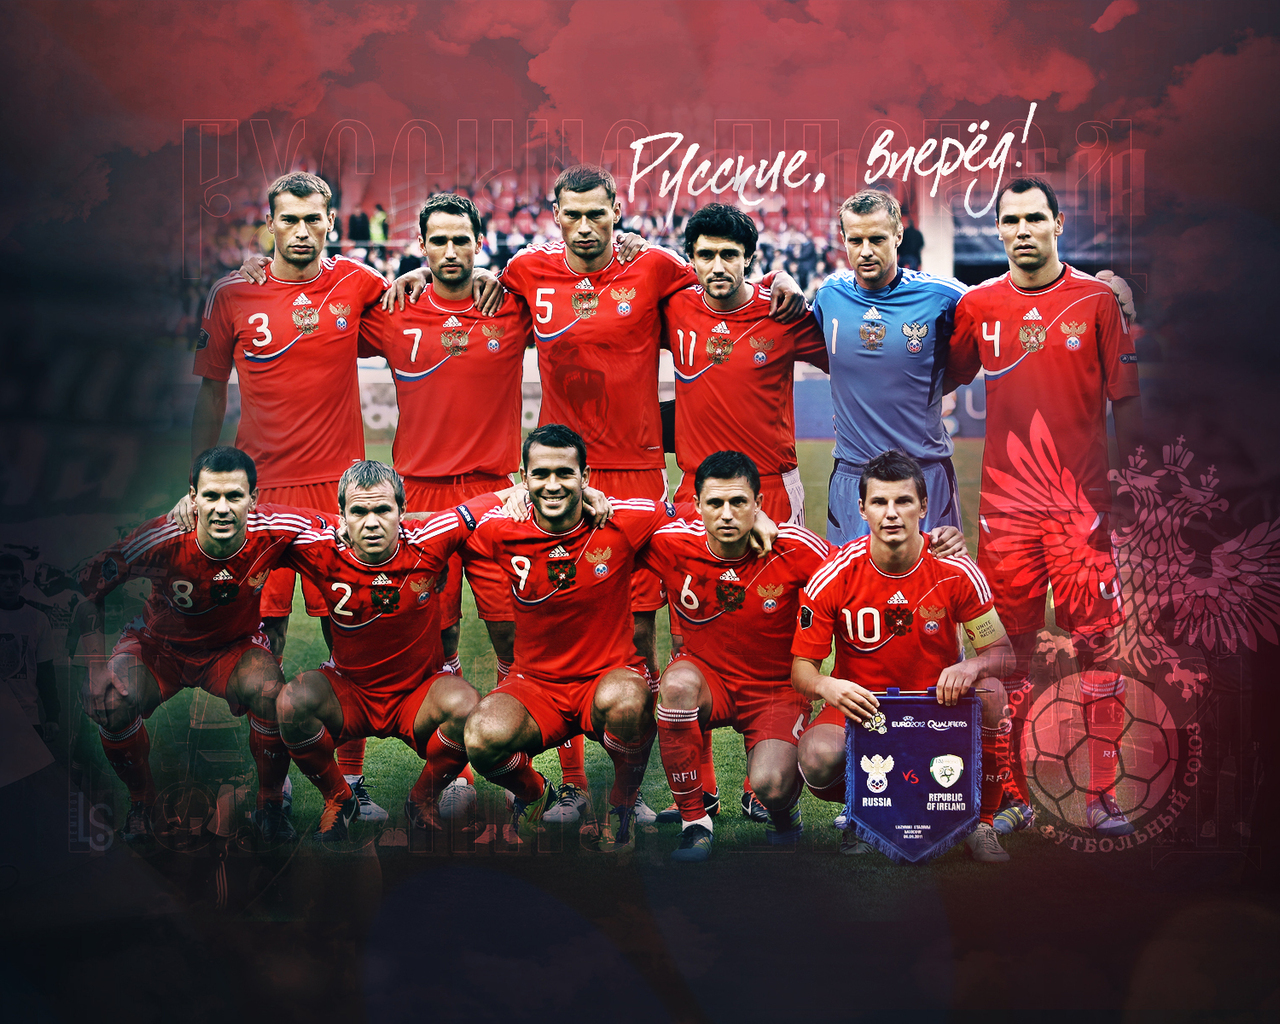 http://3.bp.blogspot.com/-rbmVfLaMlMY/UJK67BnECMI/AAAAAAAAAmY/a4yH33EIRK4/s1600/Football+HD+Wallpapers+For+PC.jpg